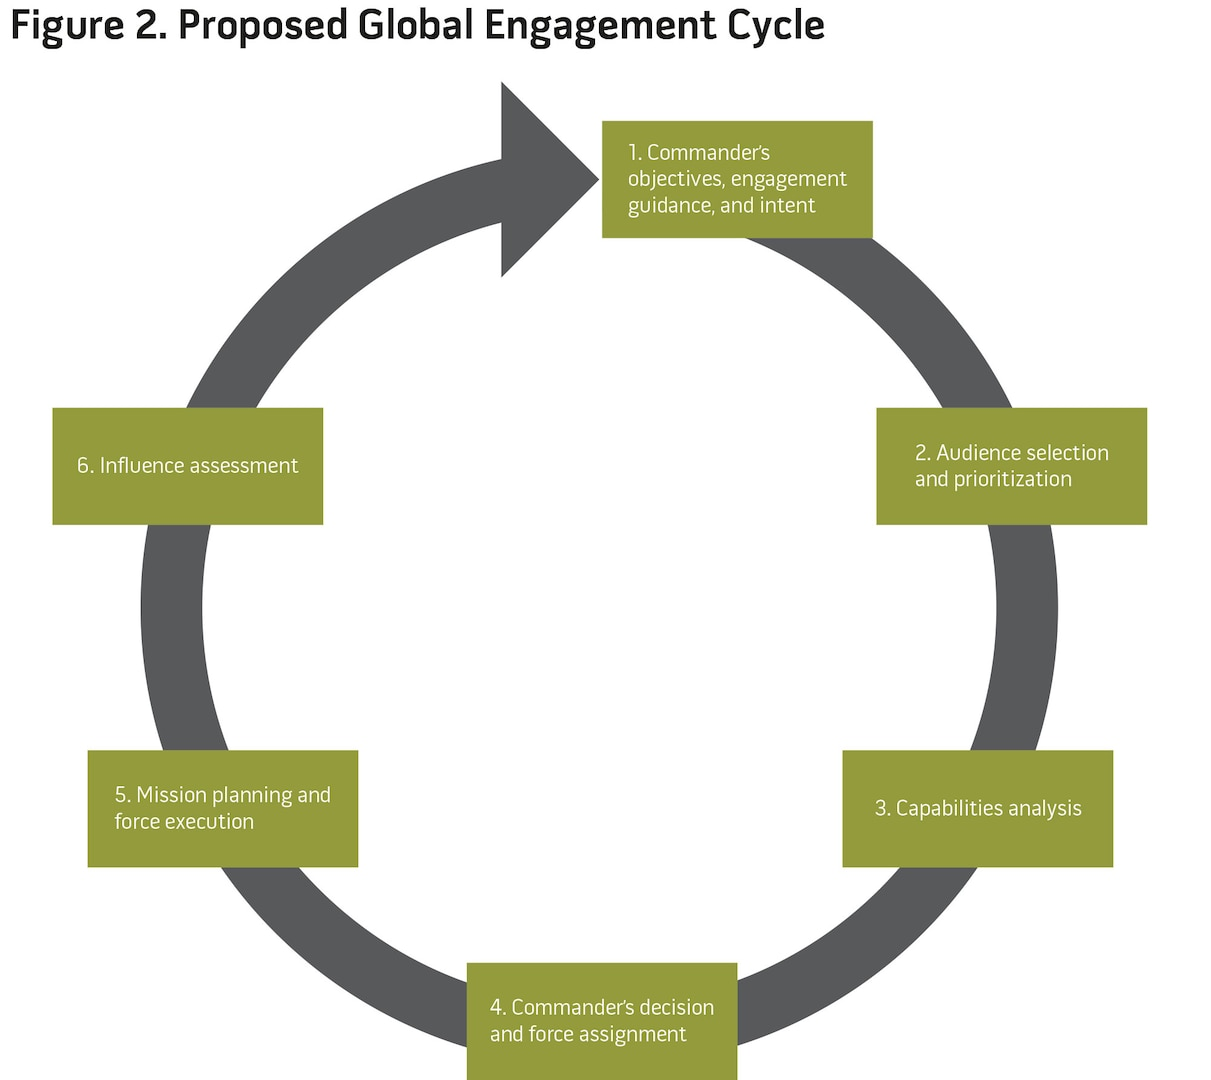 Figure 2. Proposed Global Engagement Cycle